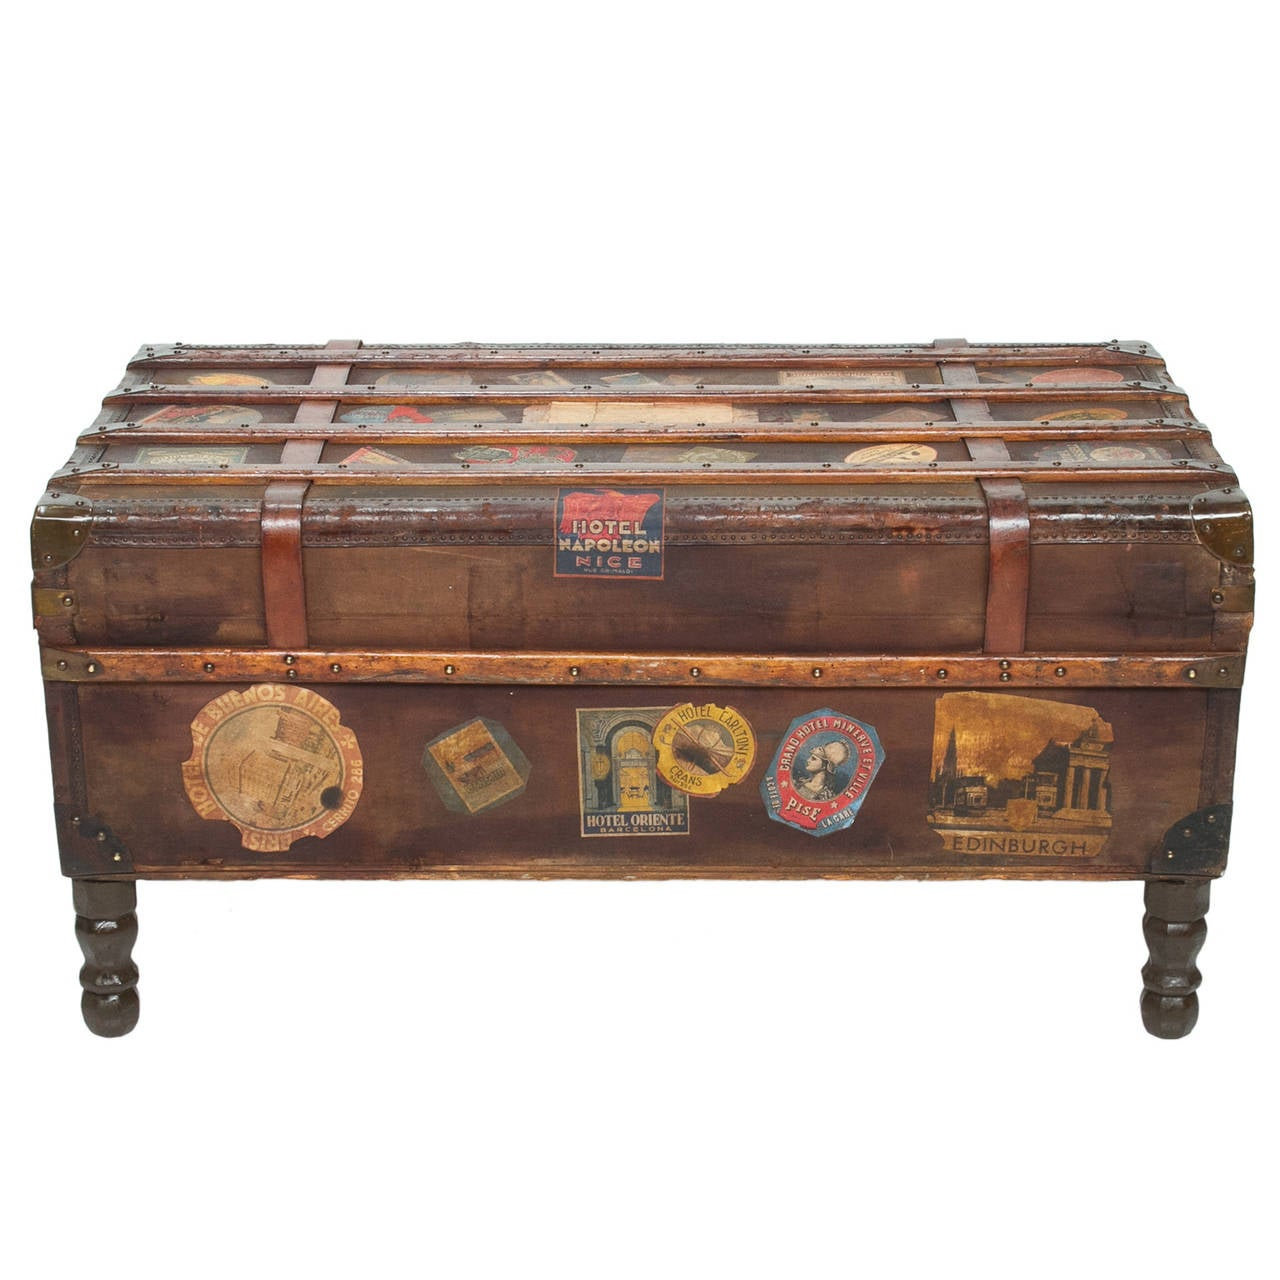 Vintage travel trunk coffee table by arthur eymann from marseille france at 1stdibs Trunk coffee tables